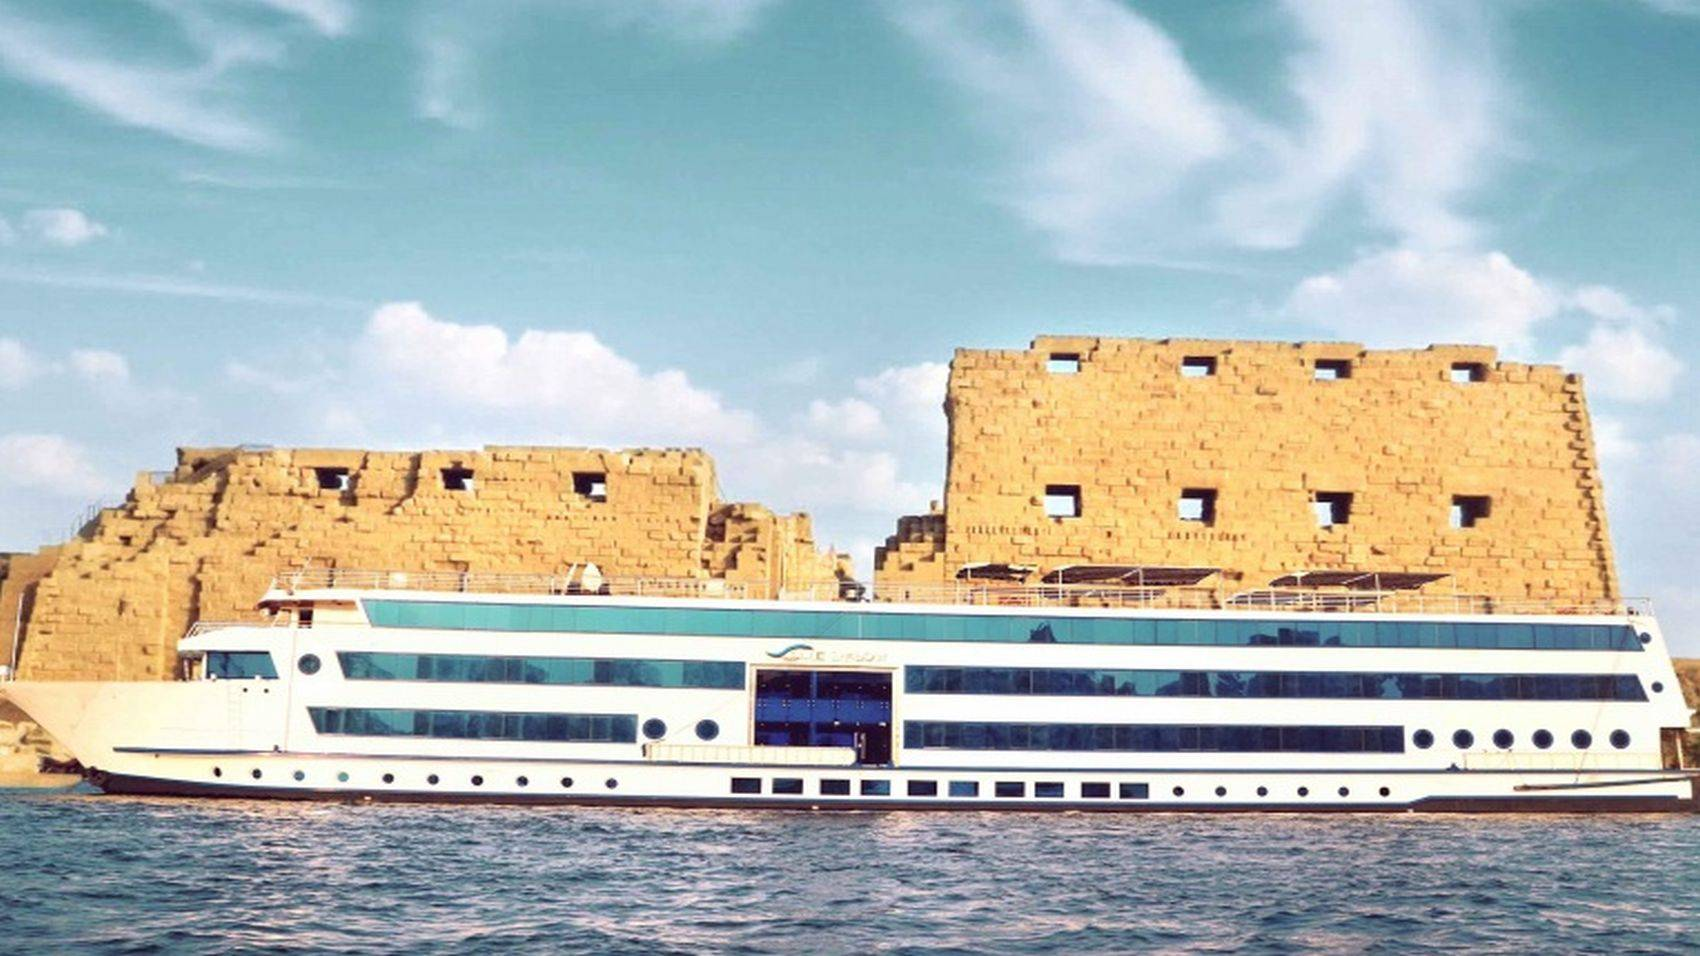 MS Blue Shadow Nile Cruise | Aswan to Luxor Nile River Cruise